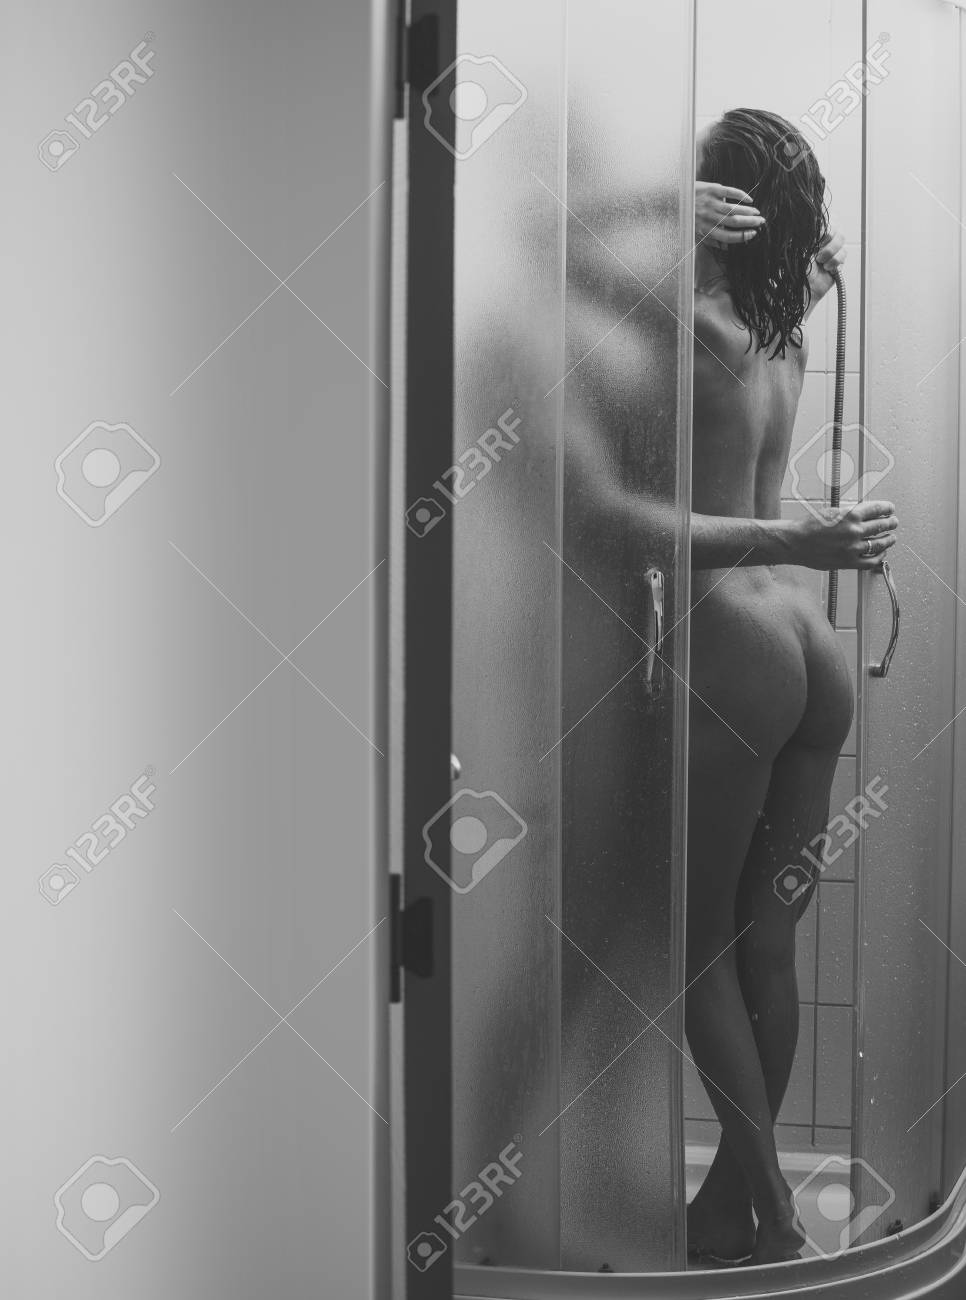 Sex nude couple in shower